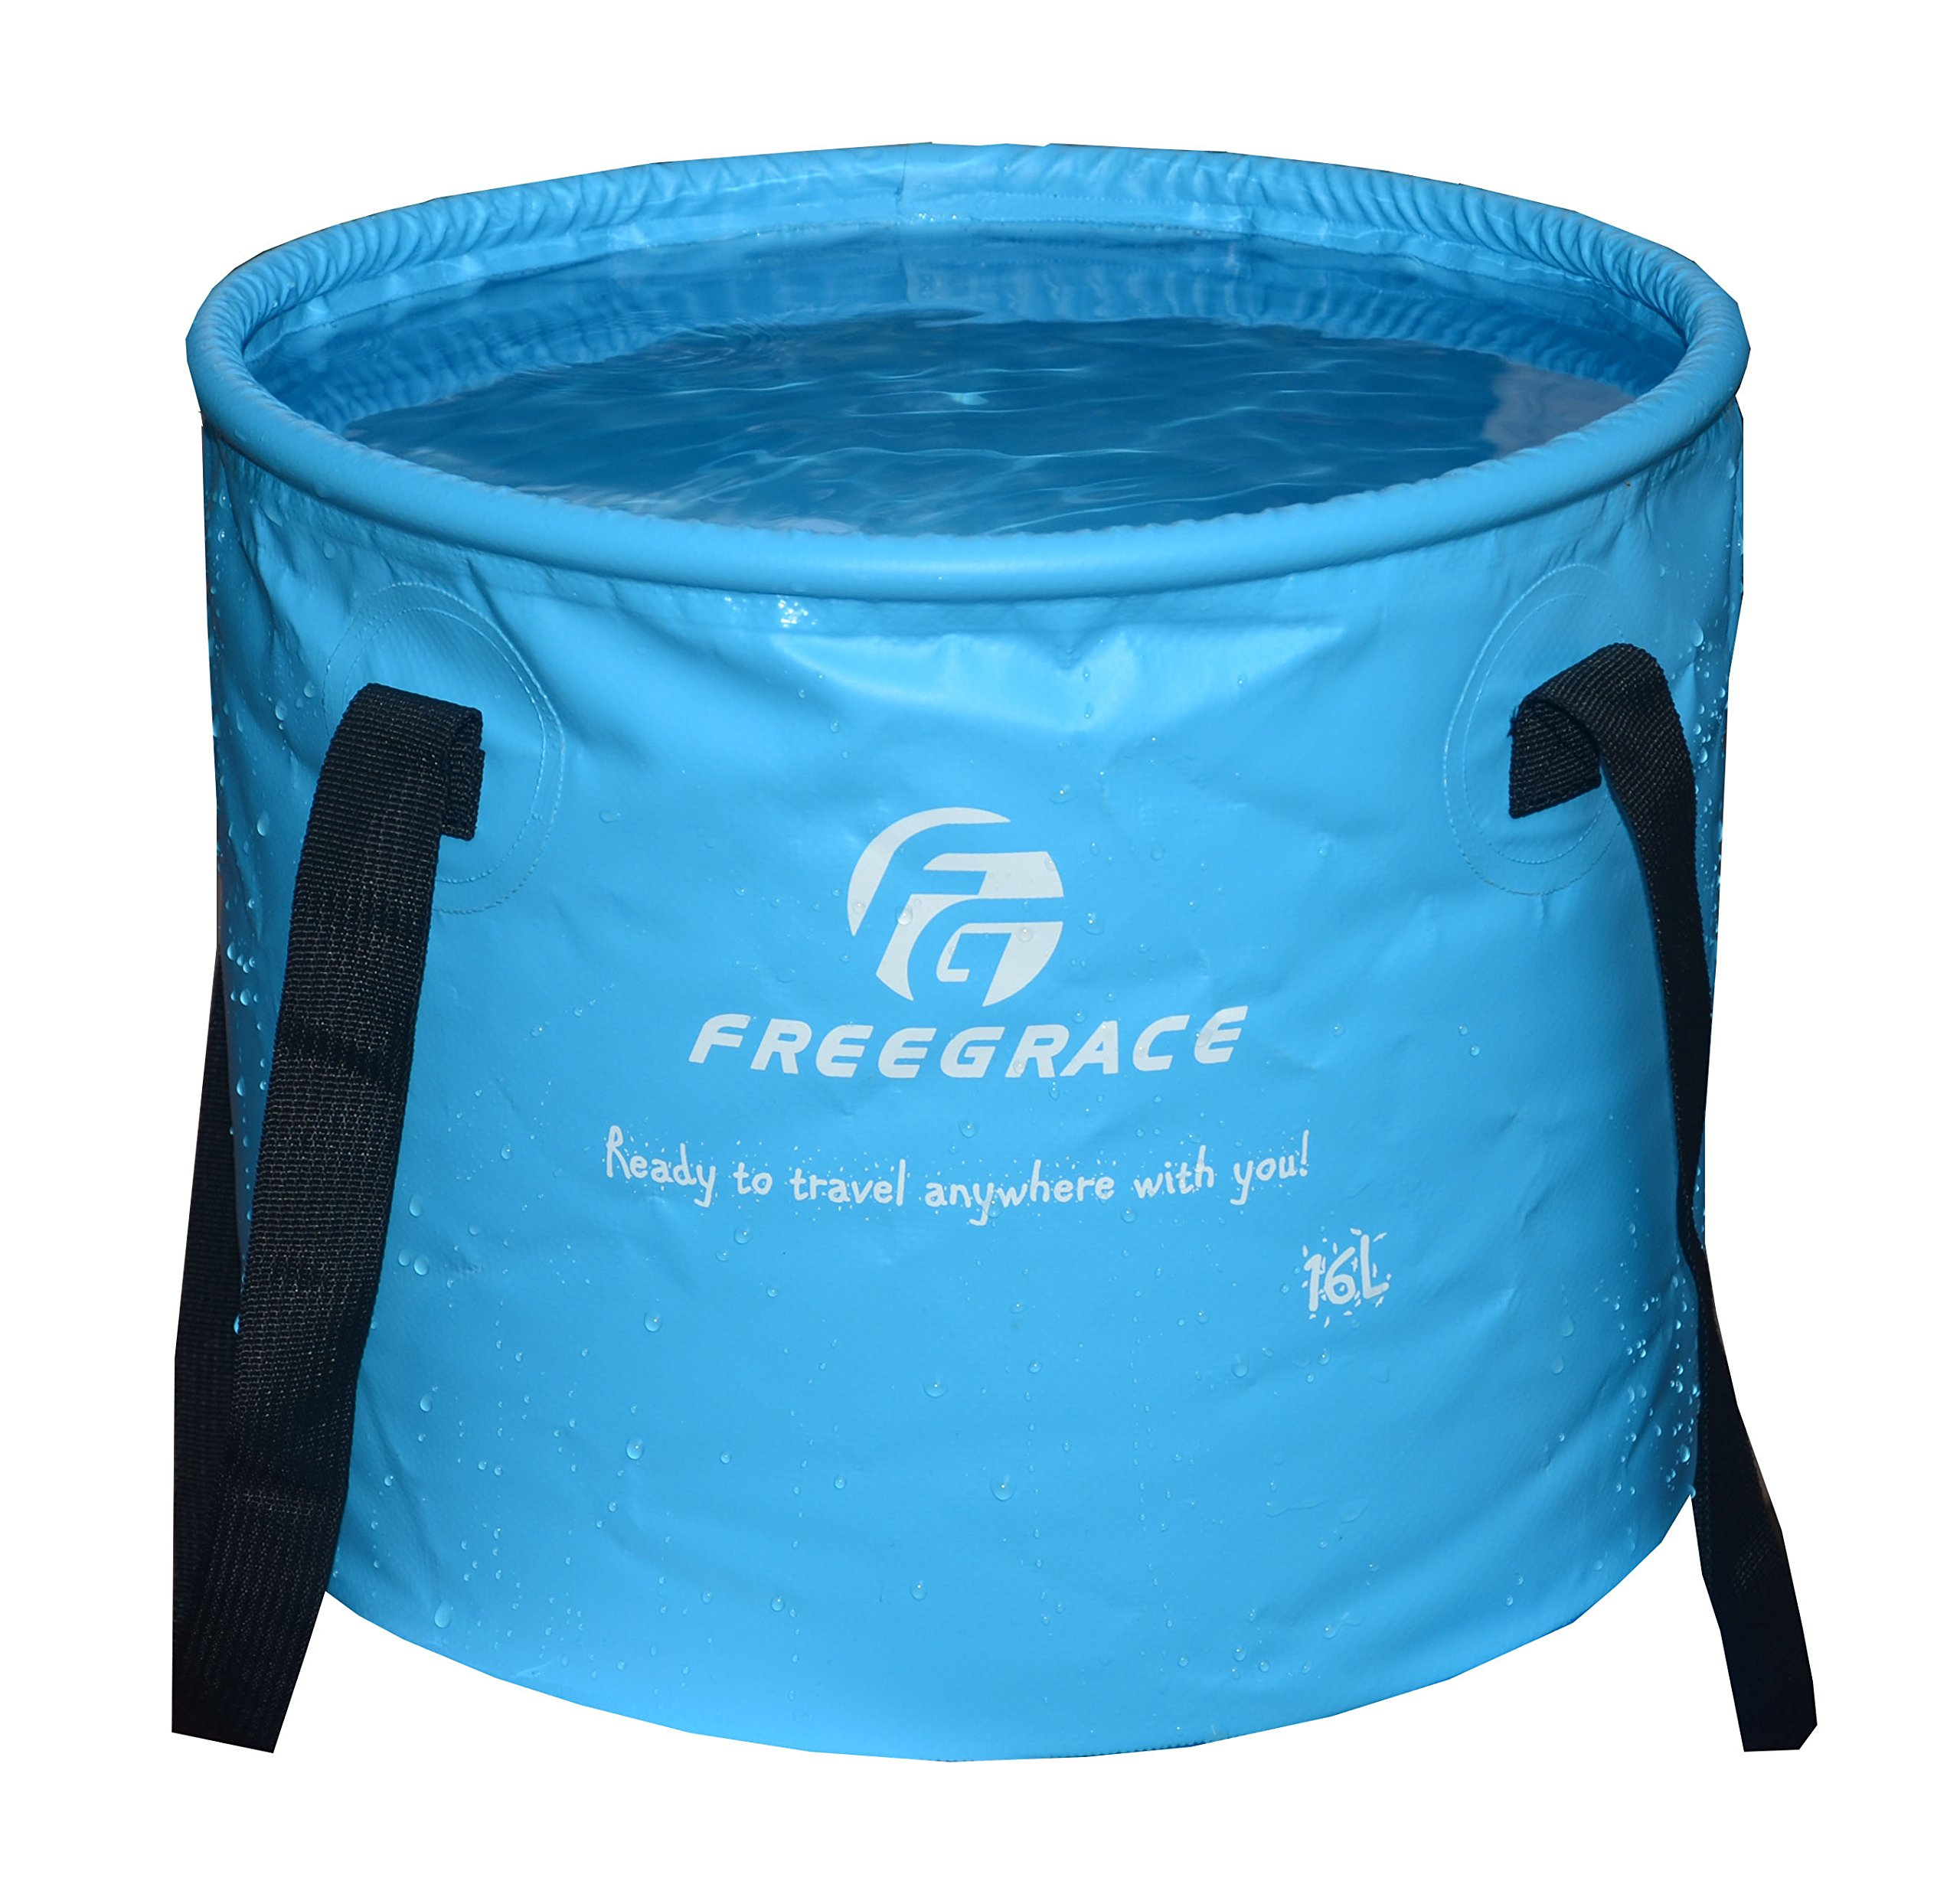 Freegrace Premium Collapsible Bucket -Multifunctional Folding Bucket -Perfect Gear for Camping, Hiking & Travel (Blue, 16L) by Freegrace